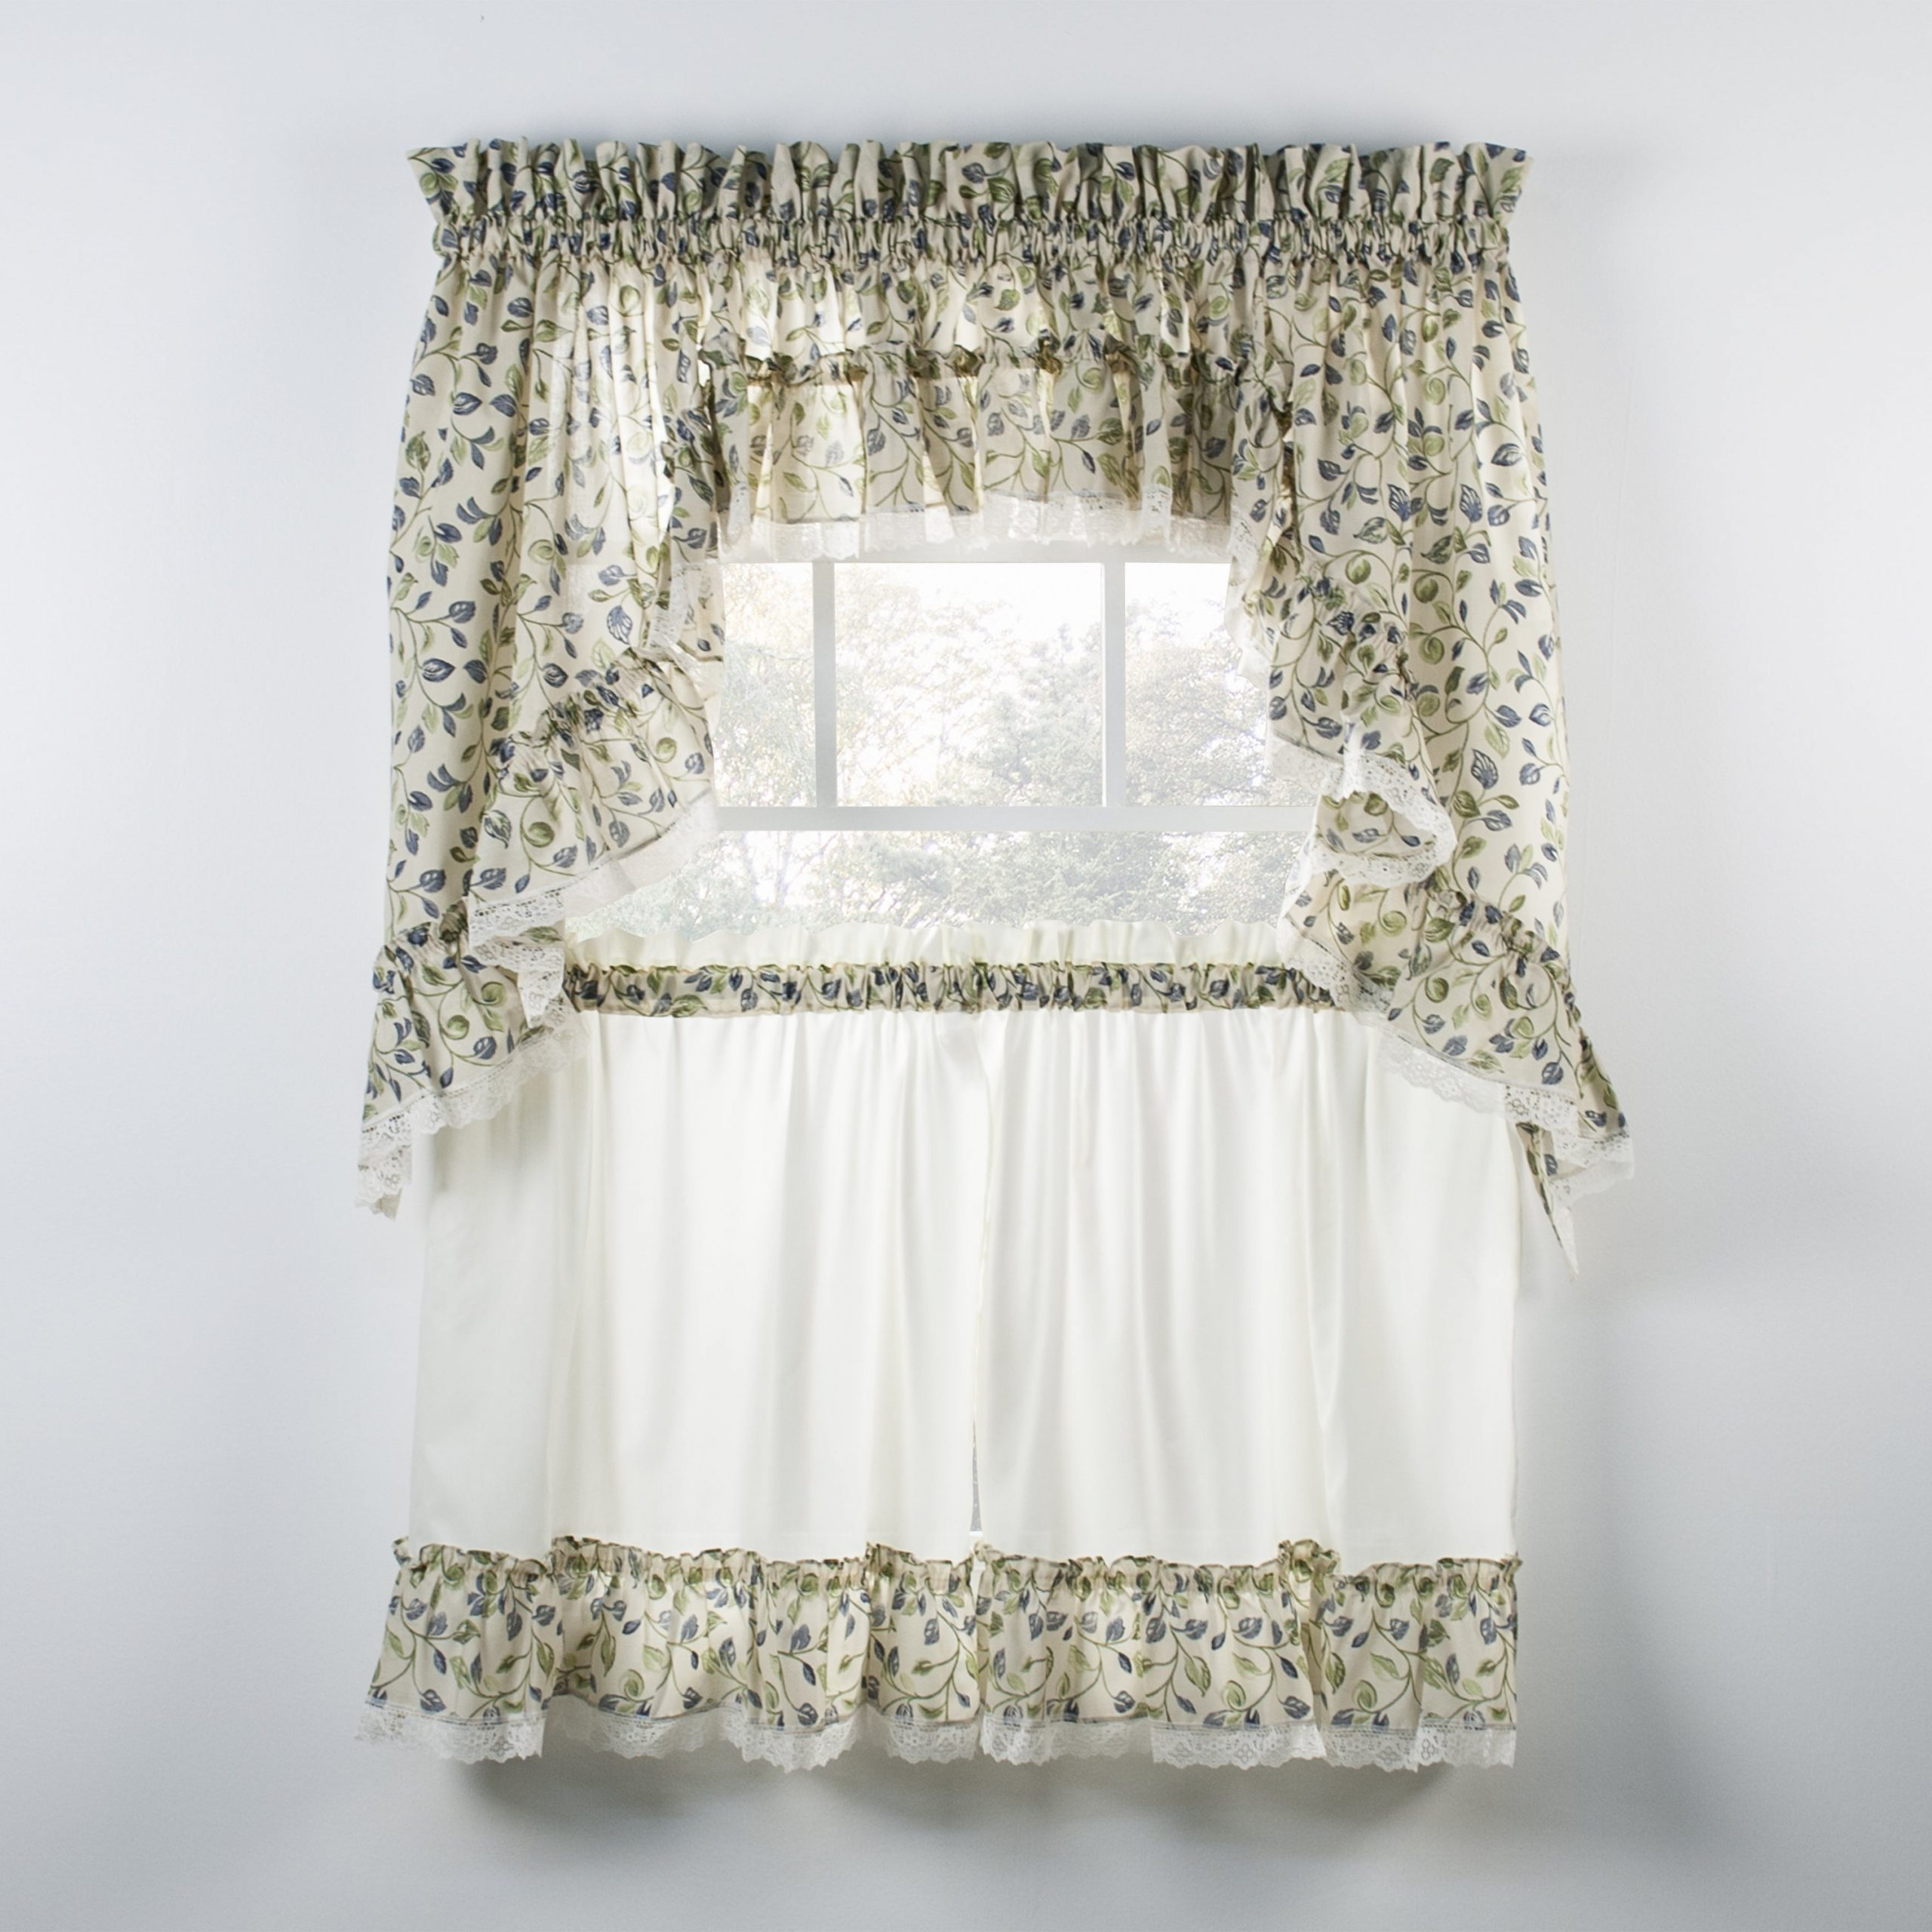 Ellis Curtain Clarice Blue Ruffled Swag And Tiers Sold Seperately With Grace Cinnabar 5 Piece Curtain Tier And Swag Sets (View 20 of 20)